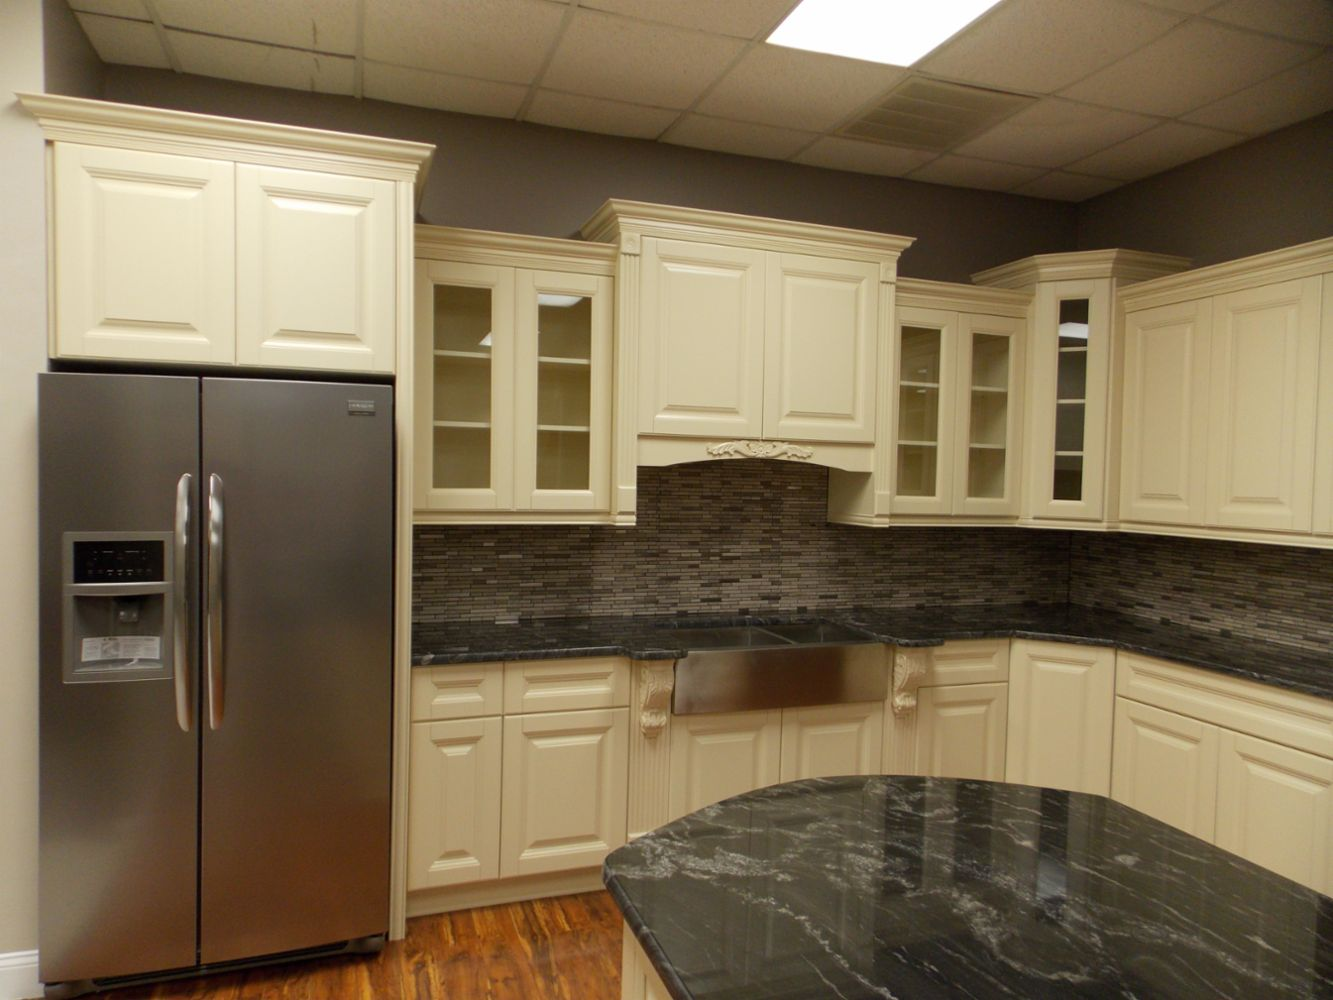 Professional Kitchen Bathoom Remodeling In Tampa Fl Angel S Professional Cabinetry